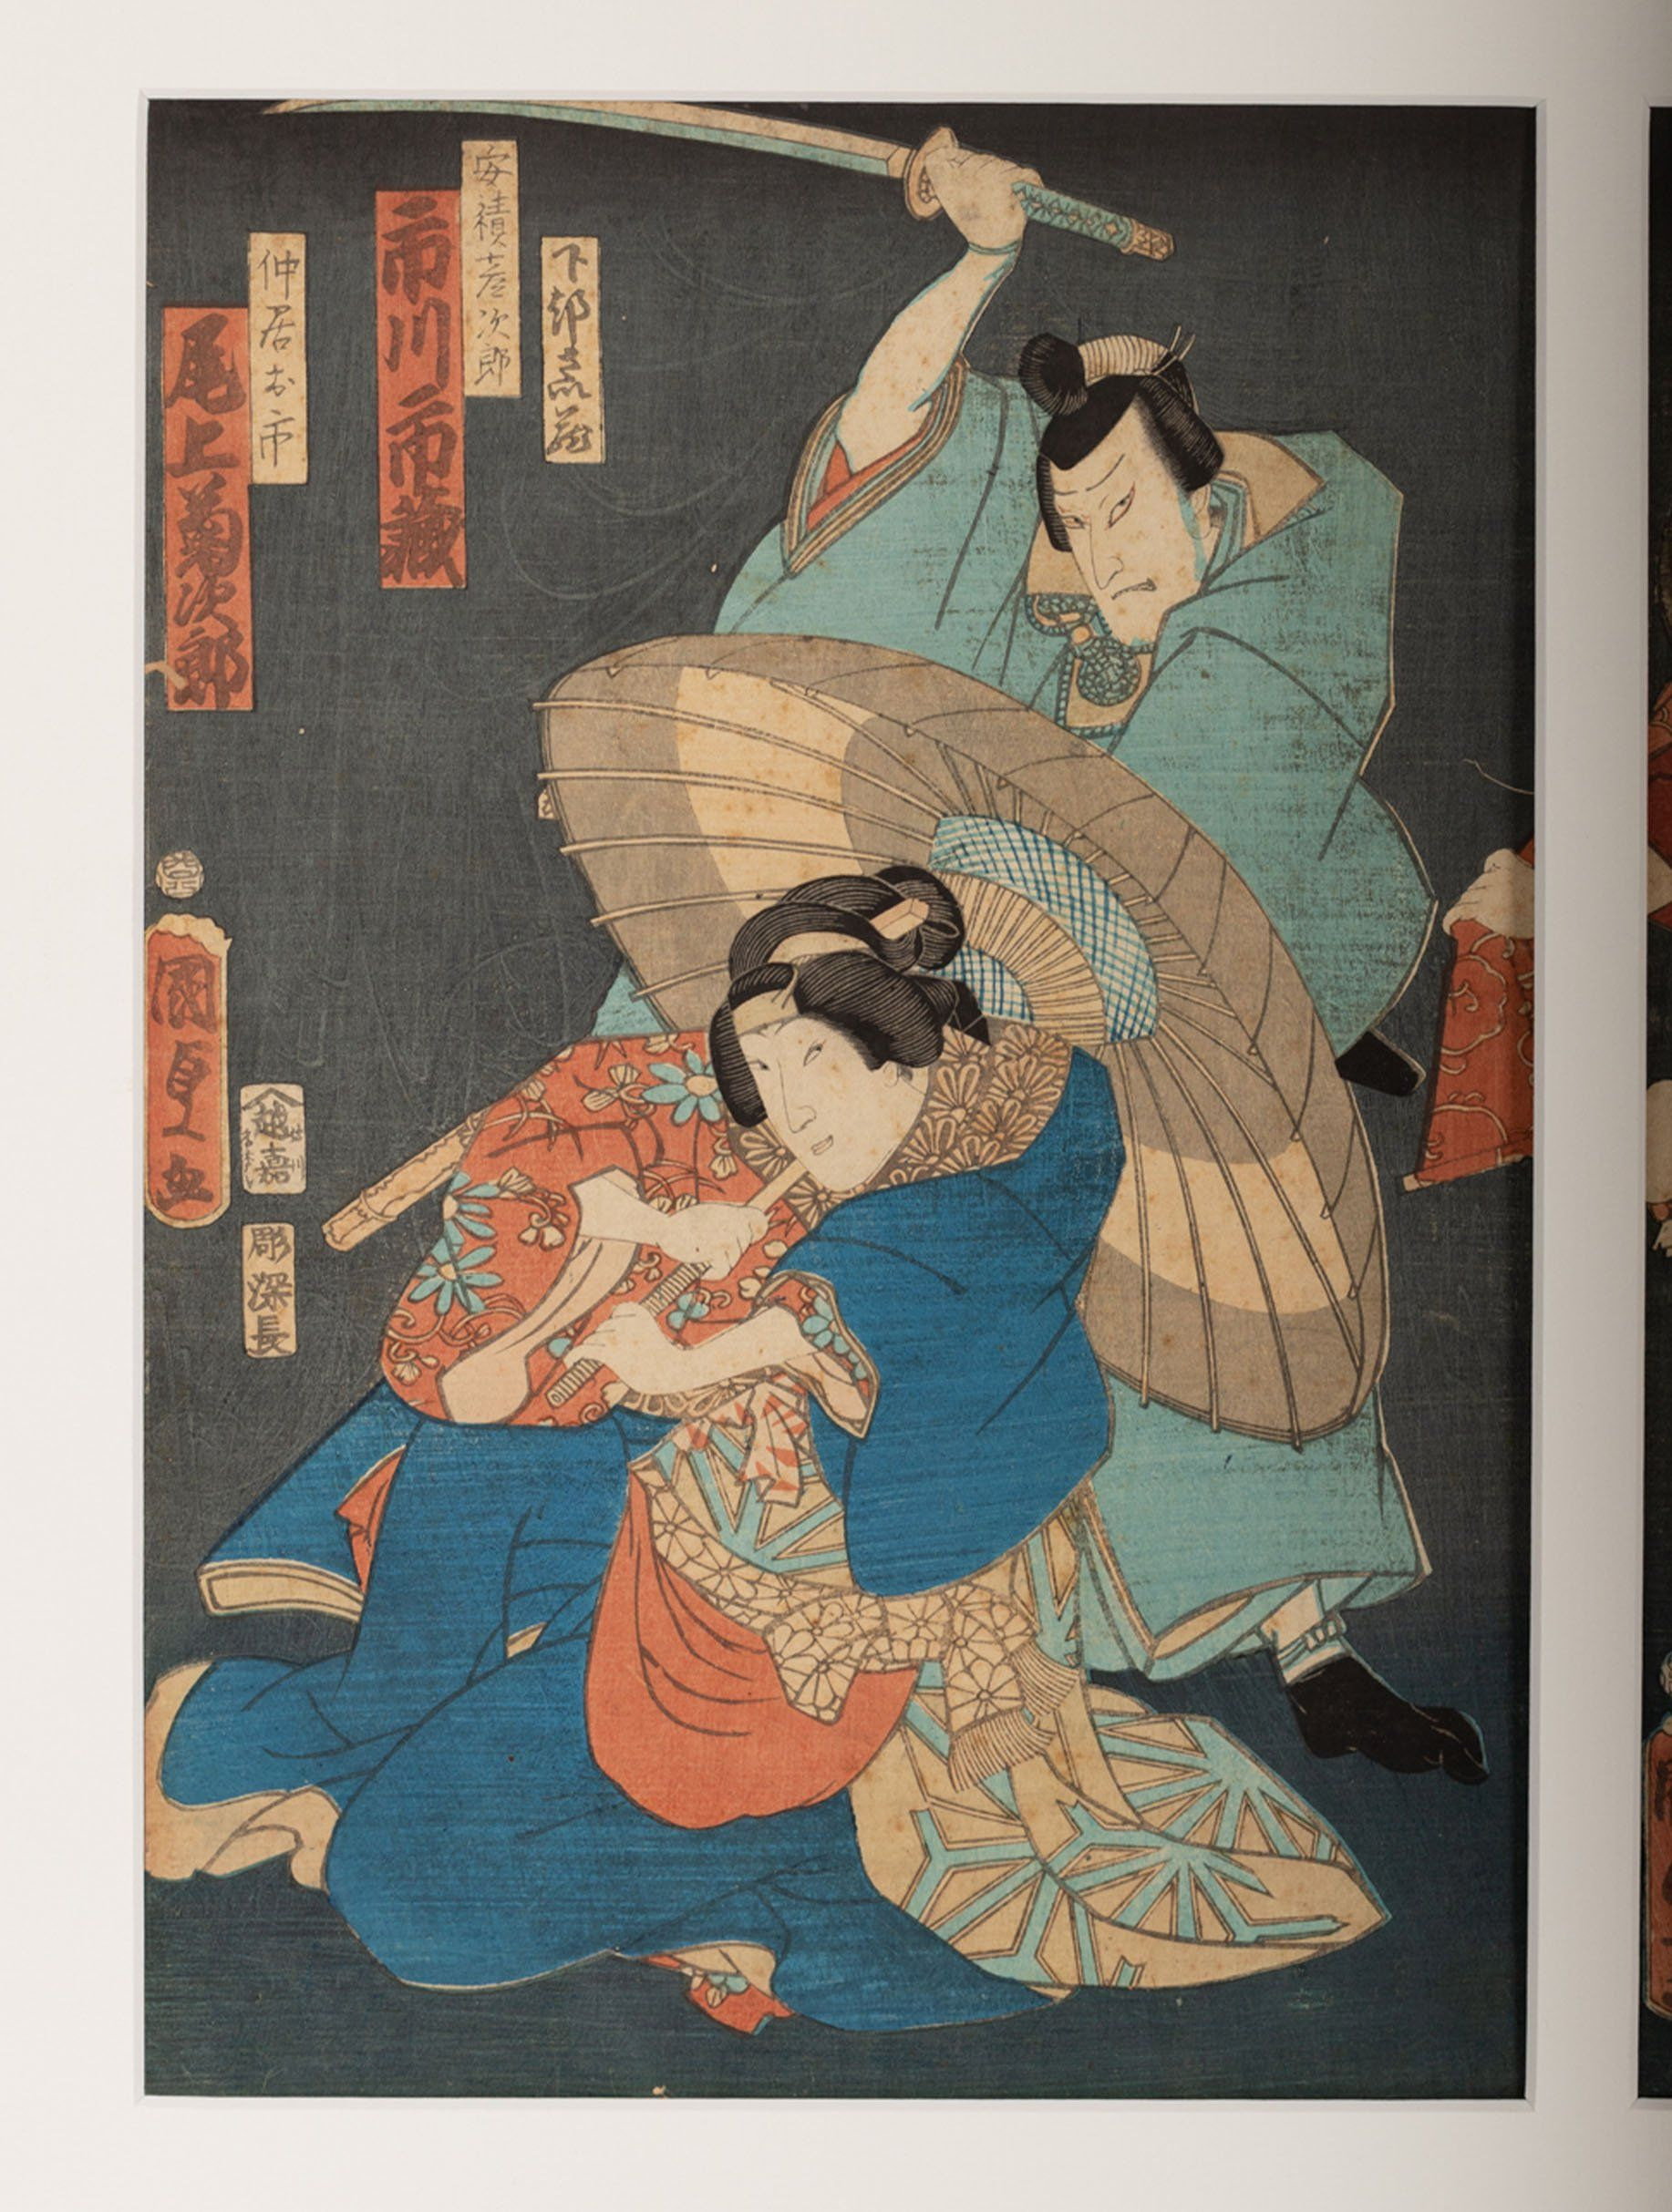 Framed c.1850s Japanese Woodblock Print of a Kabuki Theatre Fight